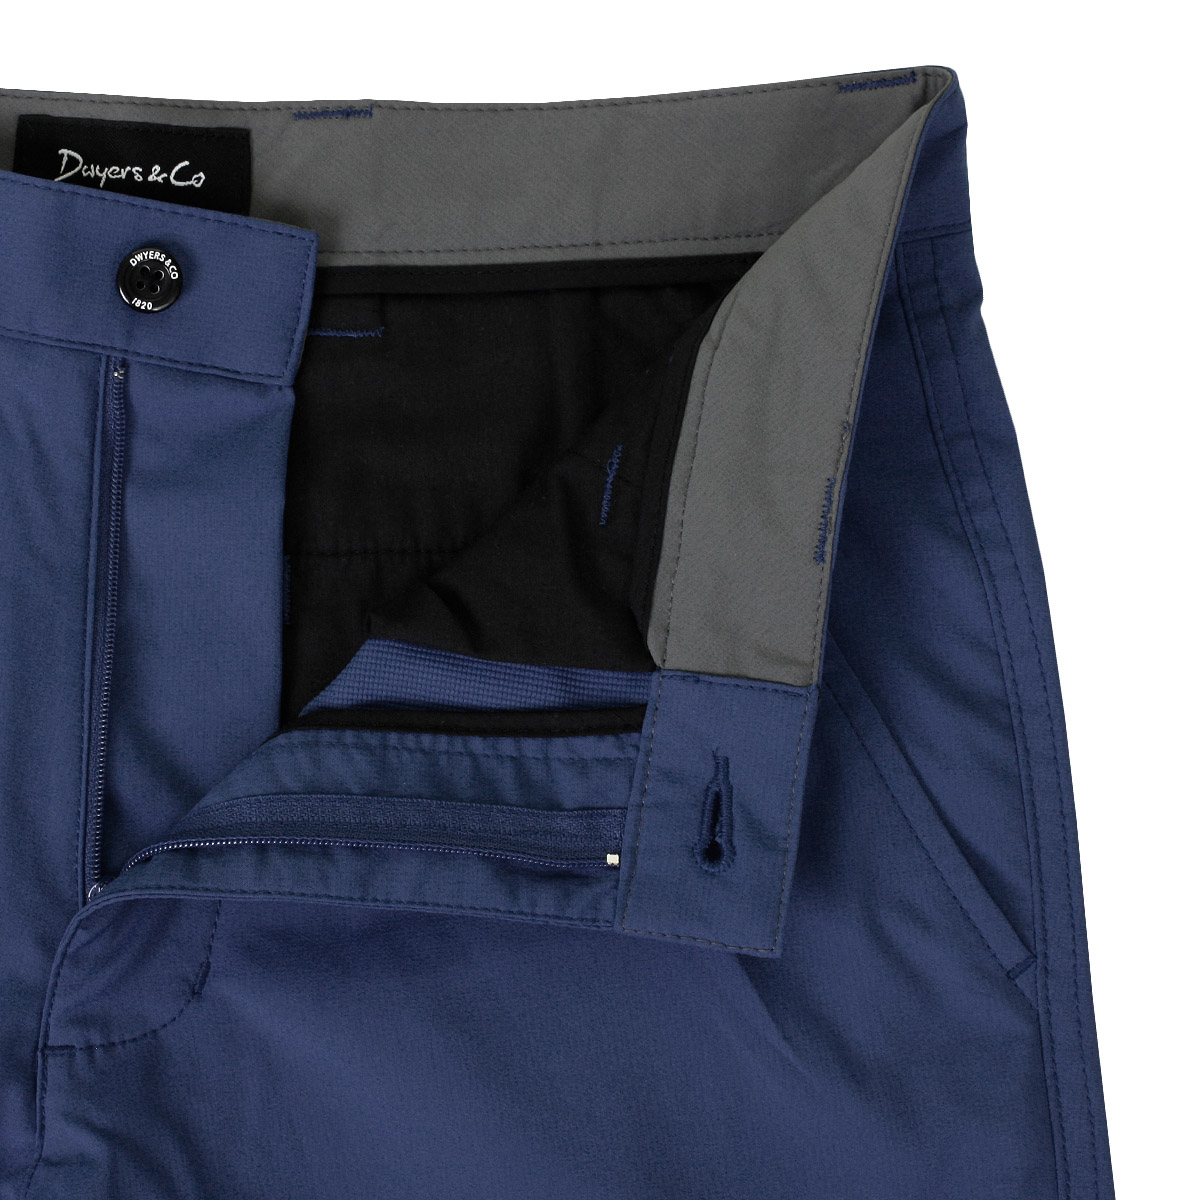 Dwyers-amp-Co-Mens-Matchplay-Stretch-Lightweight-Golf-Trousers-38-OFF-RRP thumbnail 33